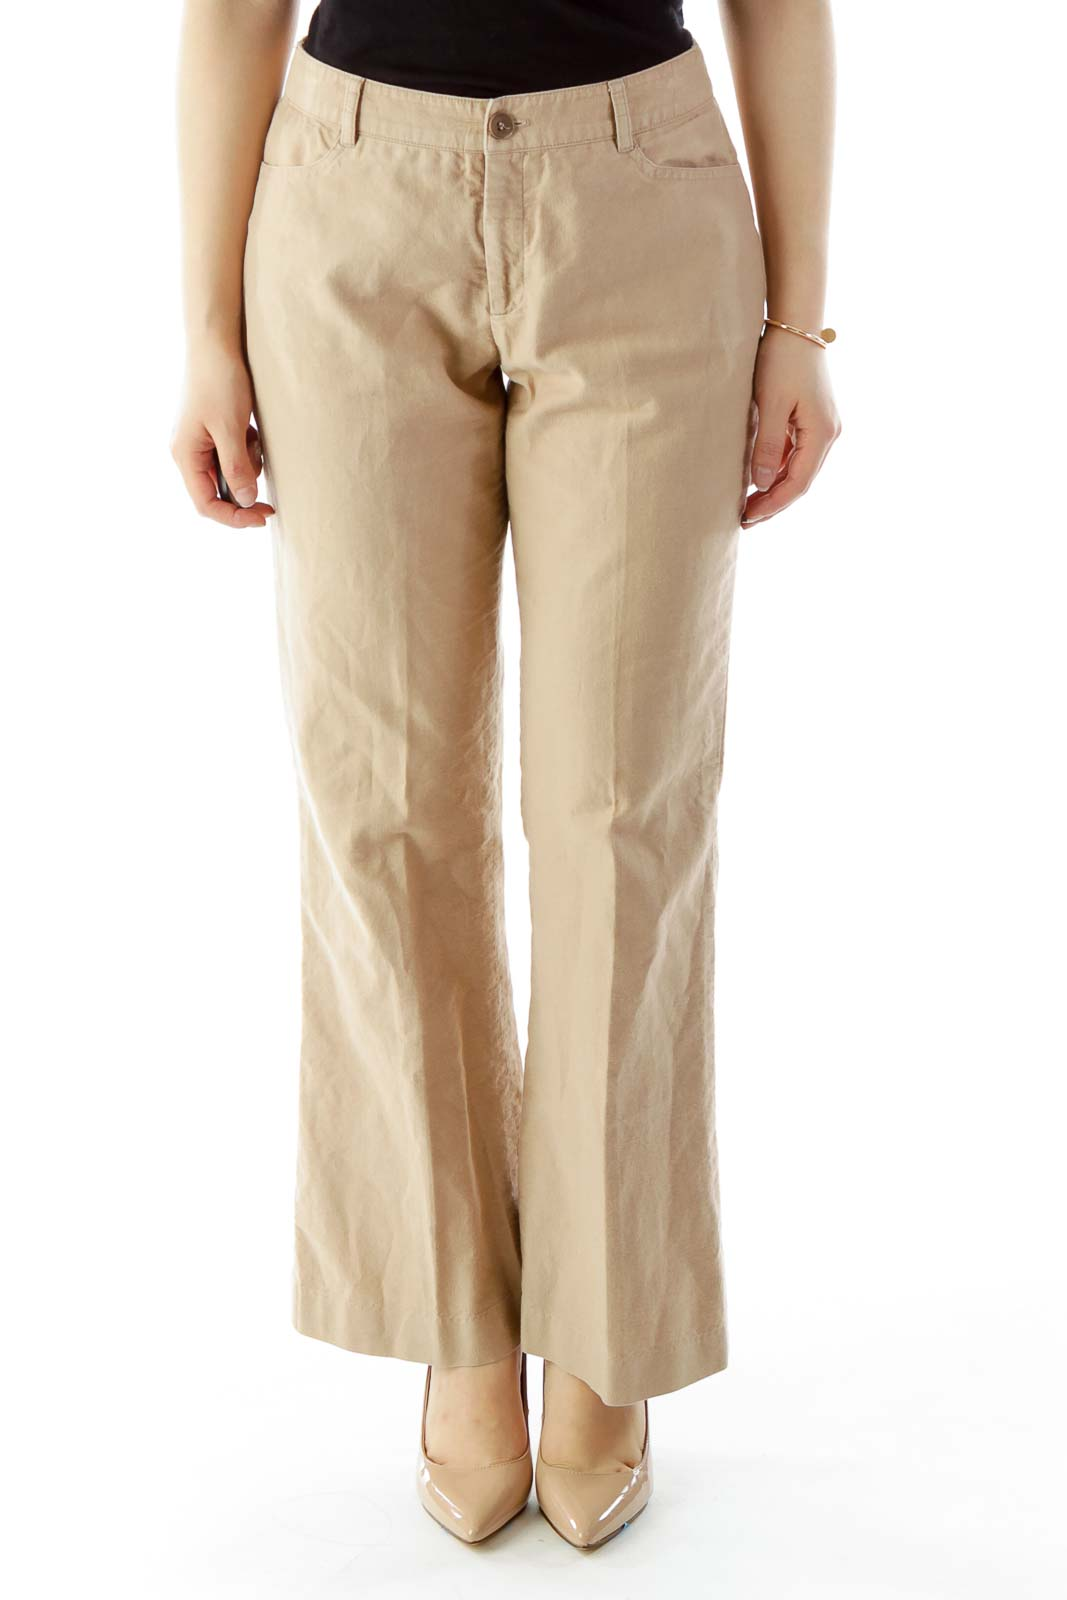 Khaki Corduroy Flared Pants